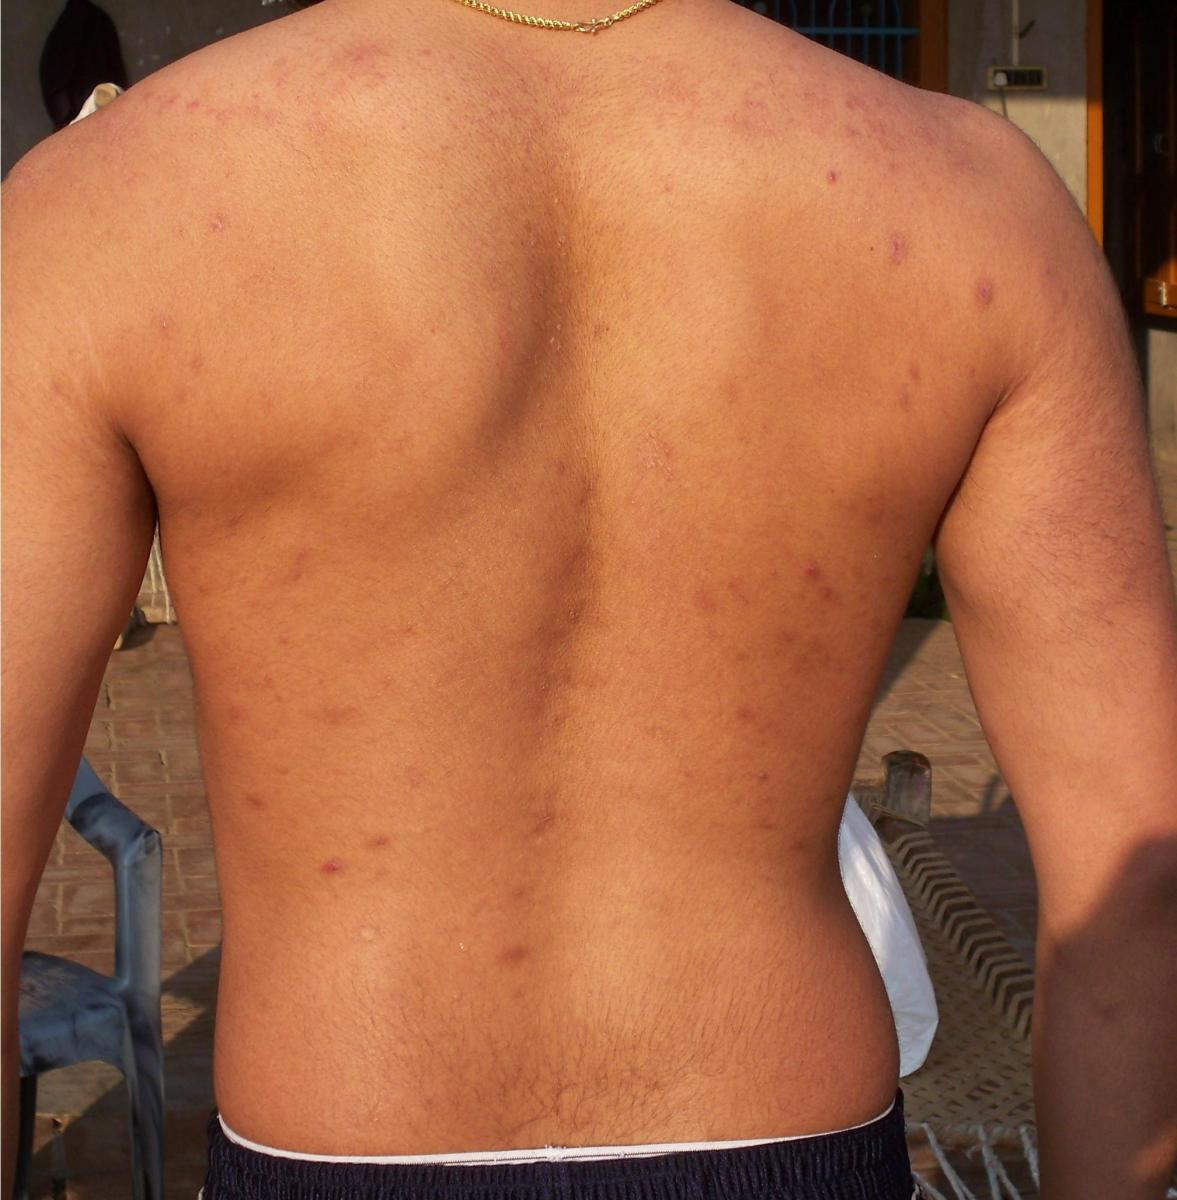 Dark Spots All Over Back & Arms :( What Worked For You